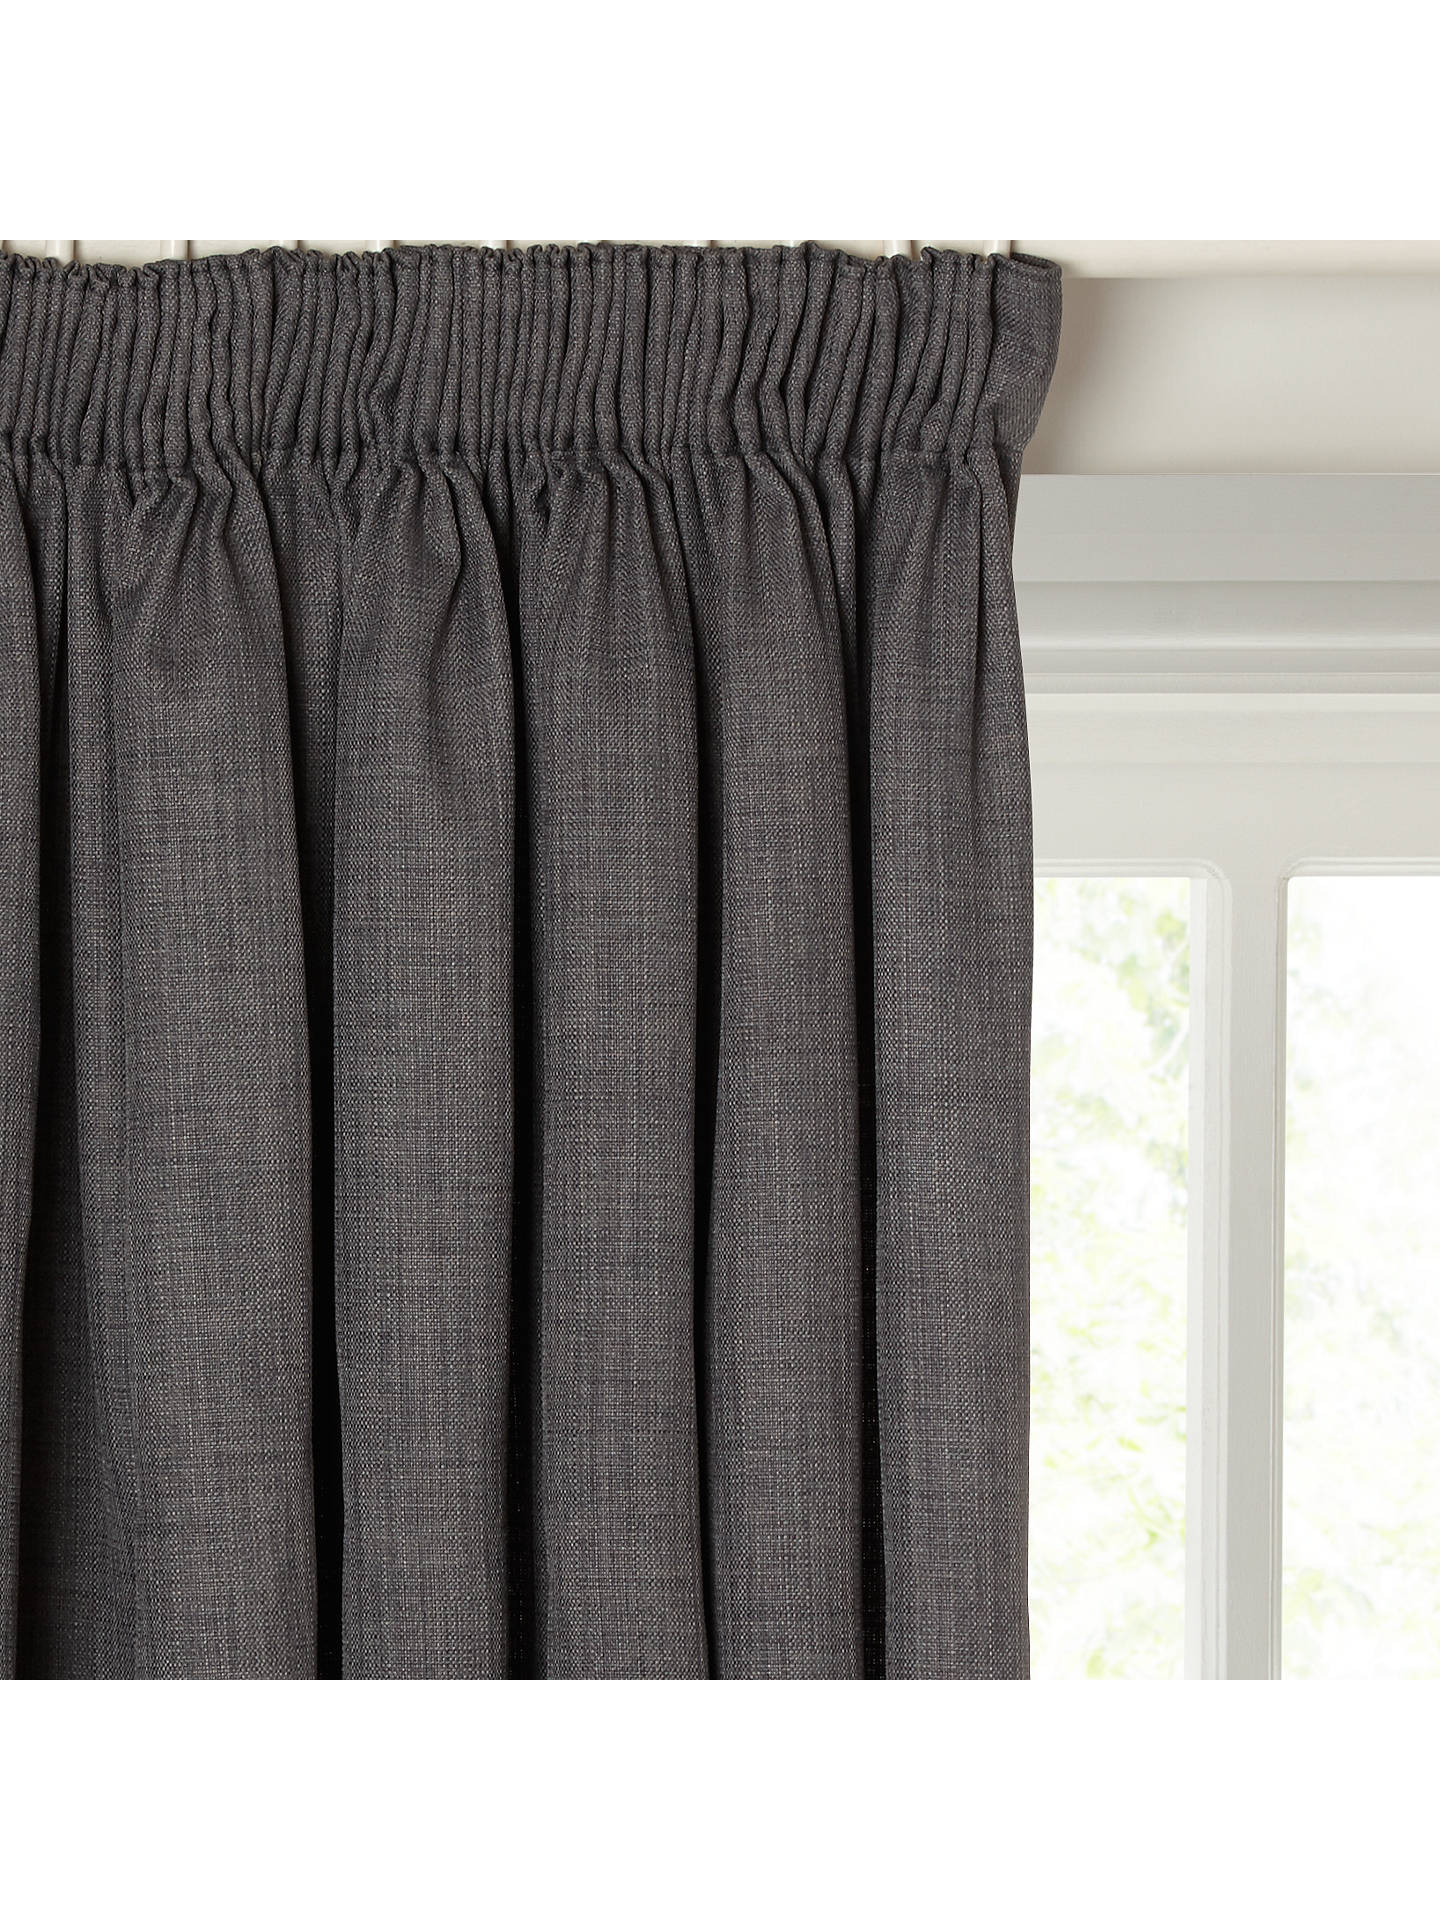 Buy John Lewis & Partners Barathea Pair Blackout Lined Pencil Pleat Curtains, Steel, W117 x Drop 228cm Online at johnlewis.com